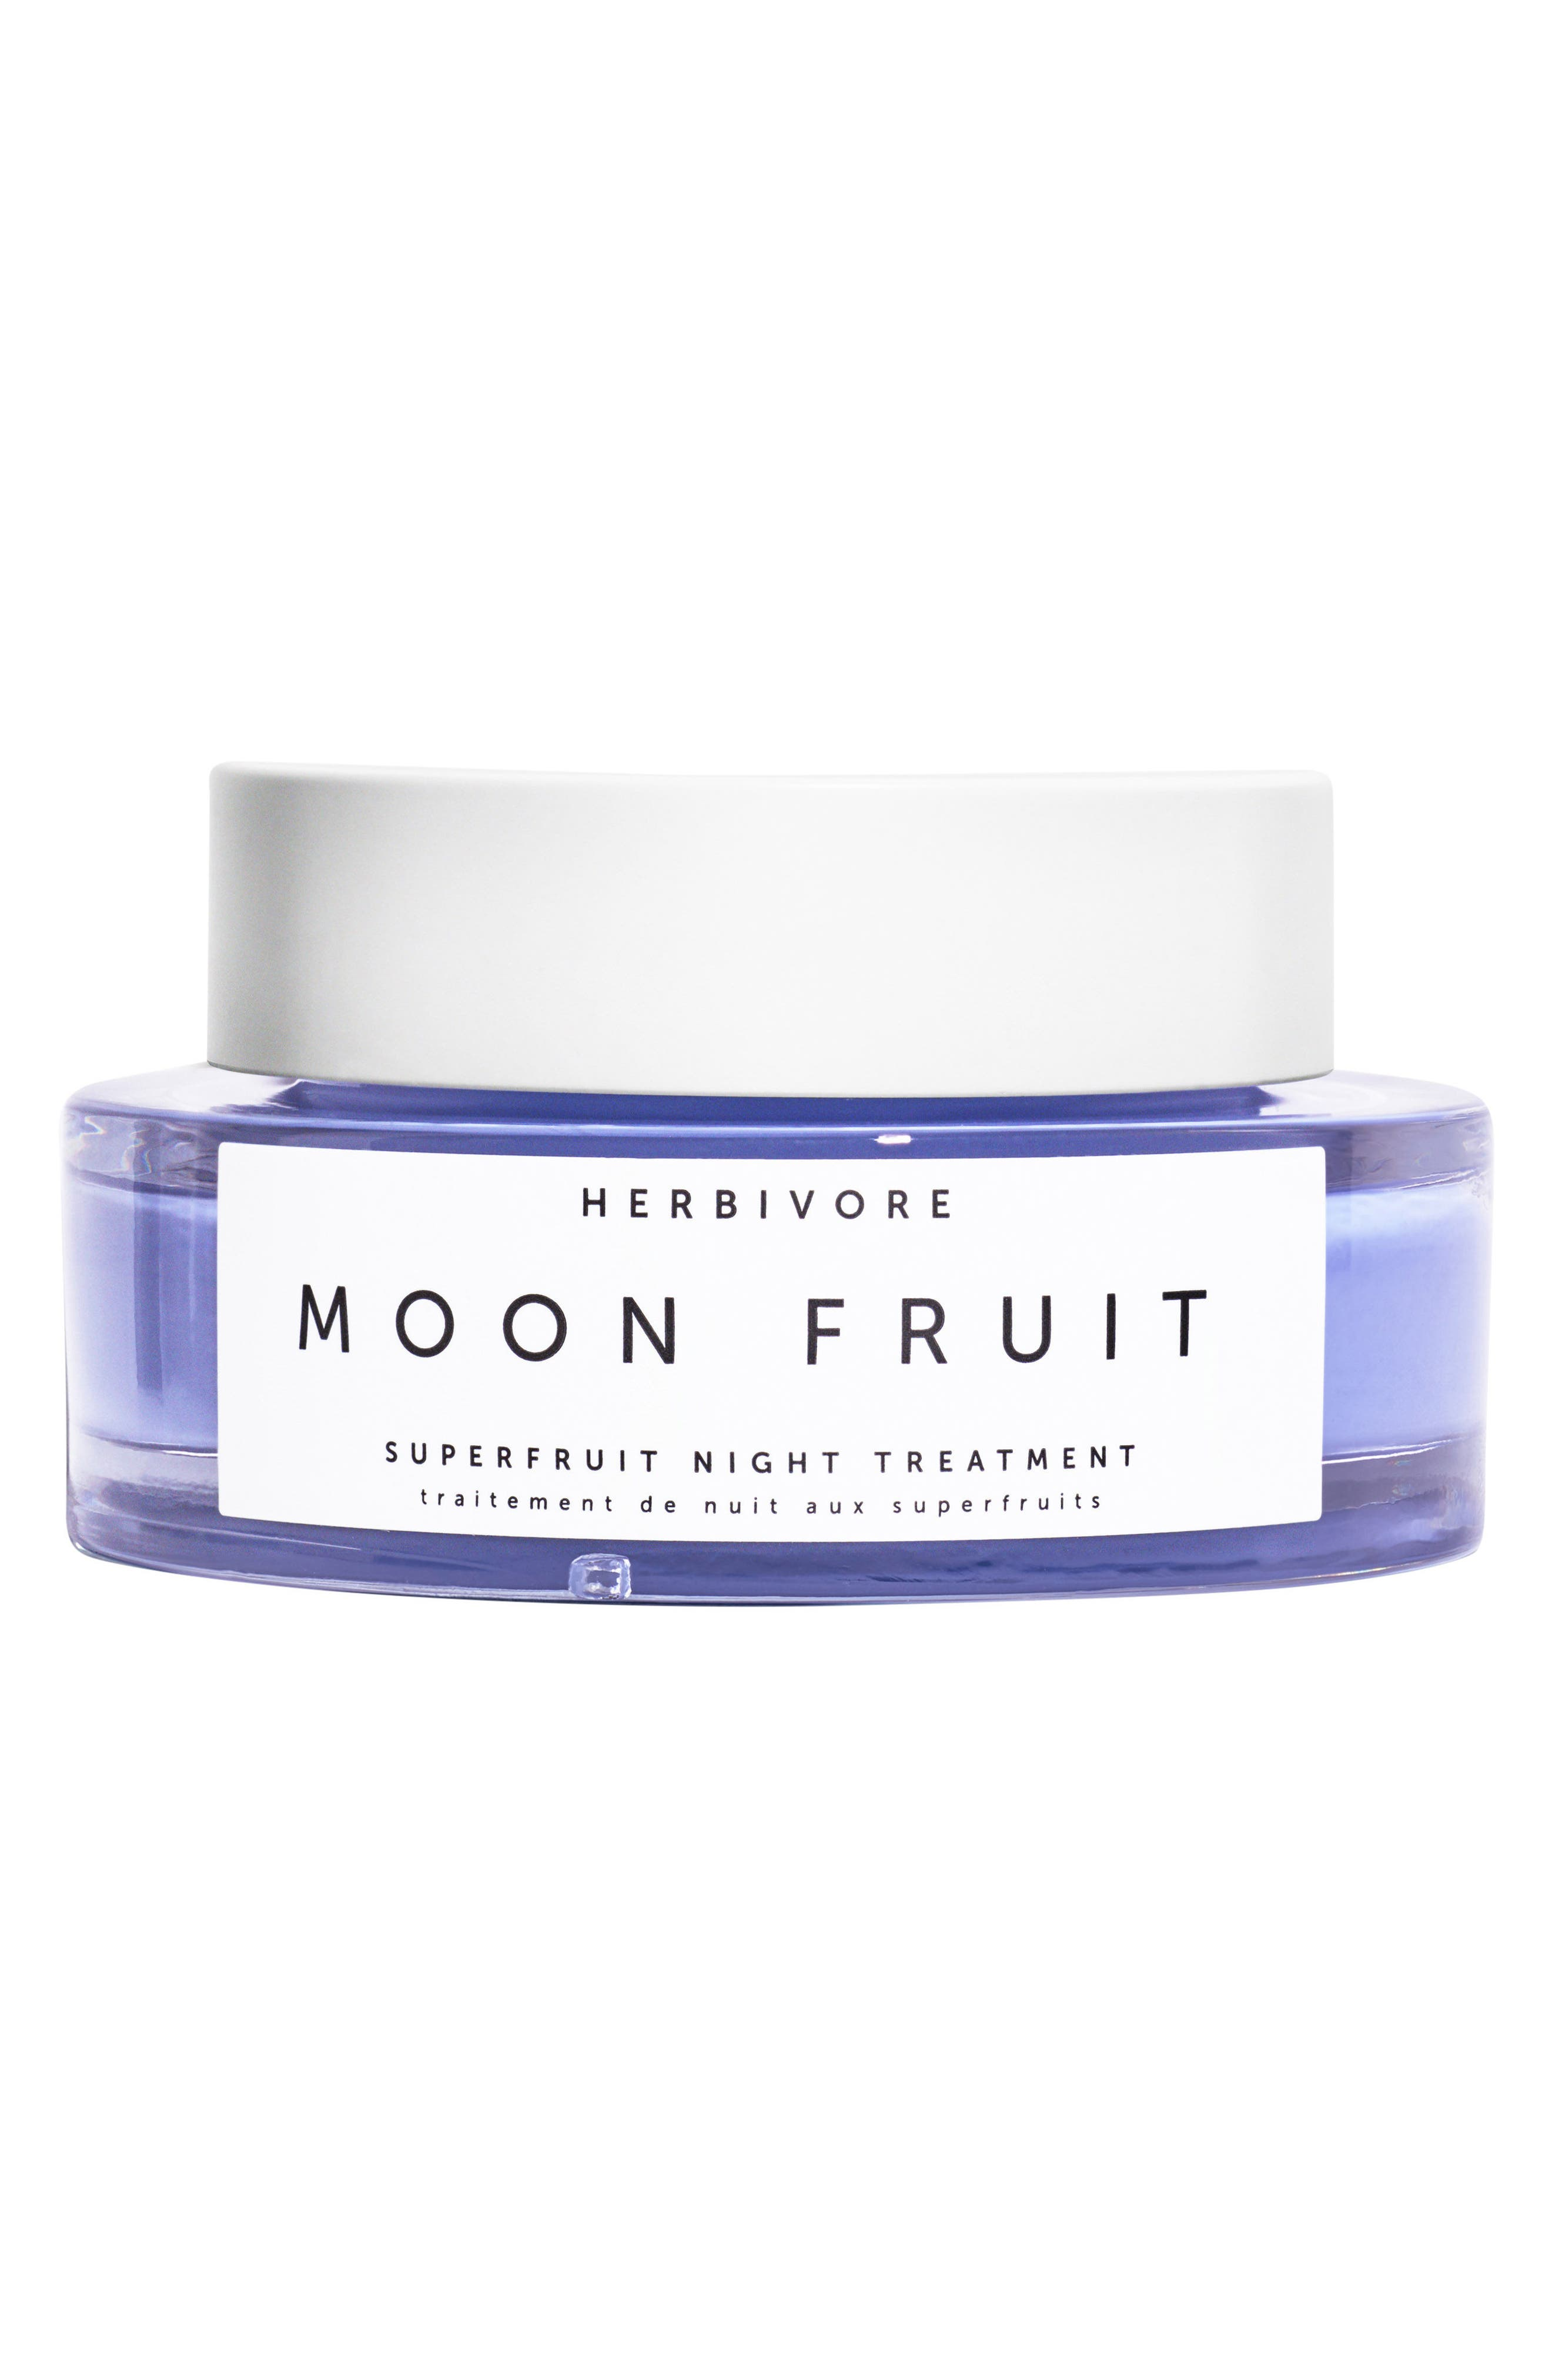 Moon Fruit Superfruit Night Treatment,                         Main,                         color, Lavender